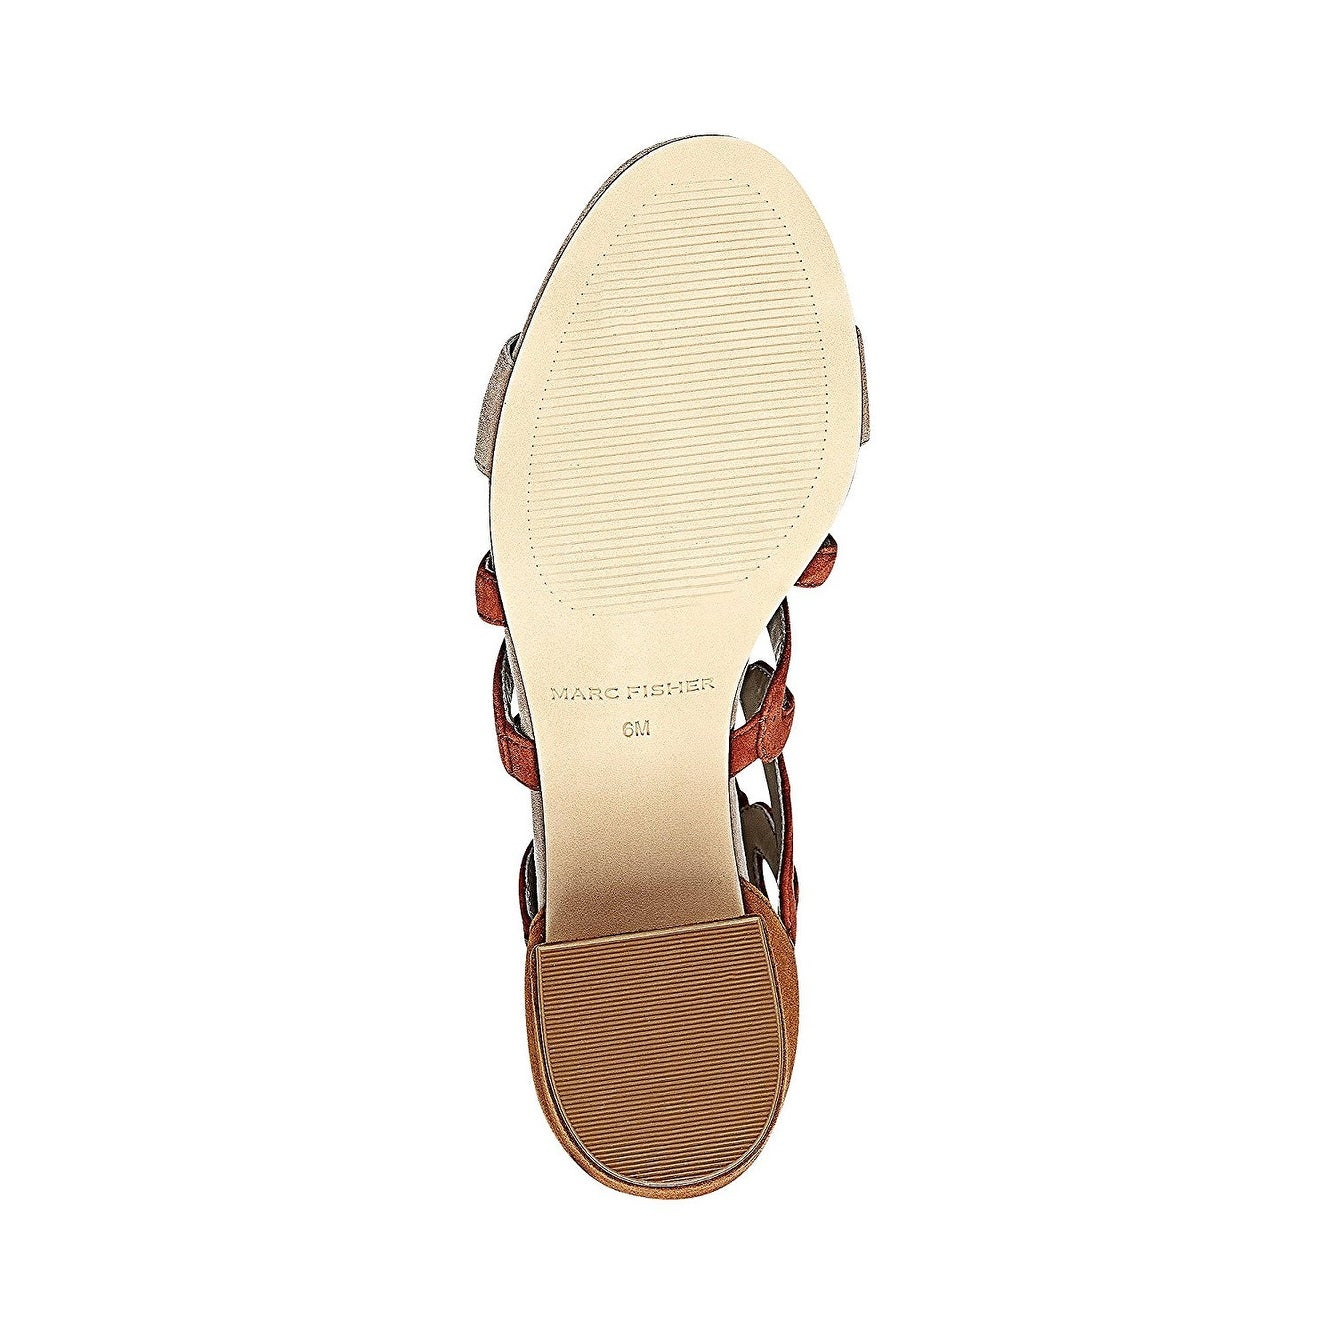 083b38cca749 Shop Marc Fisher Womens Rayz Suede Almond Toe Casual Strappy Sandals - Free  Shipping On Orders Over  45 - Overstock - 19808185